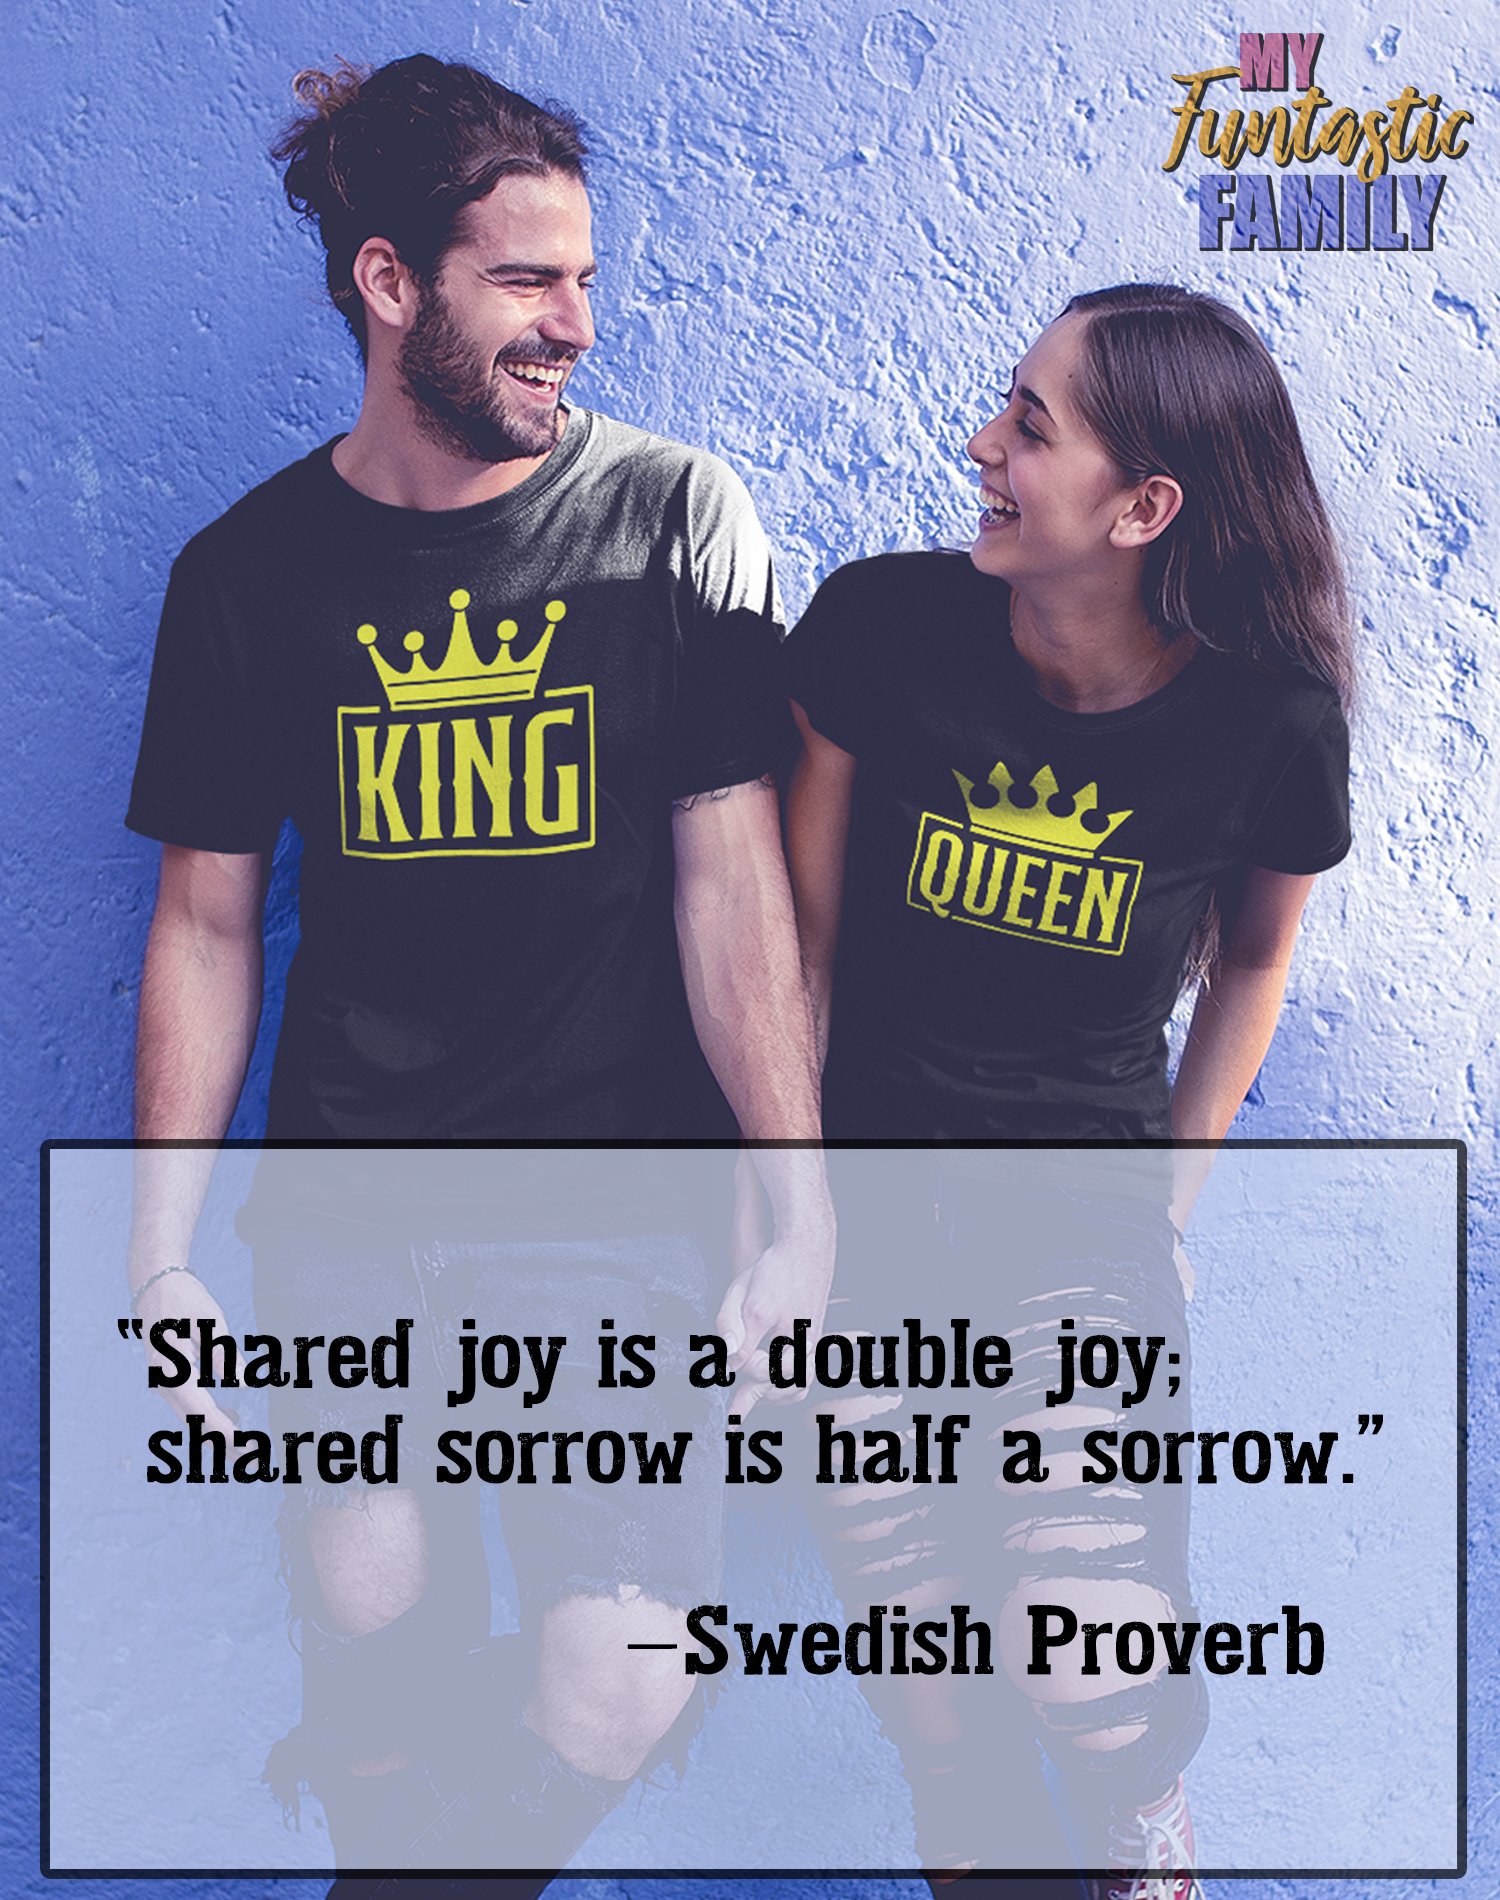 King And Queen Couples Shirts Romantic Royal Couple T Shirts Etsy Couple T Shirt Couple Shirts Couples Outfit